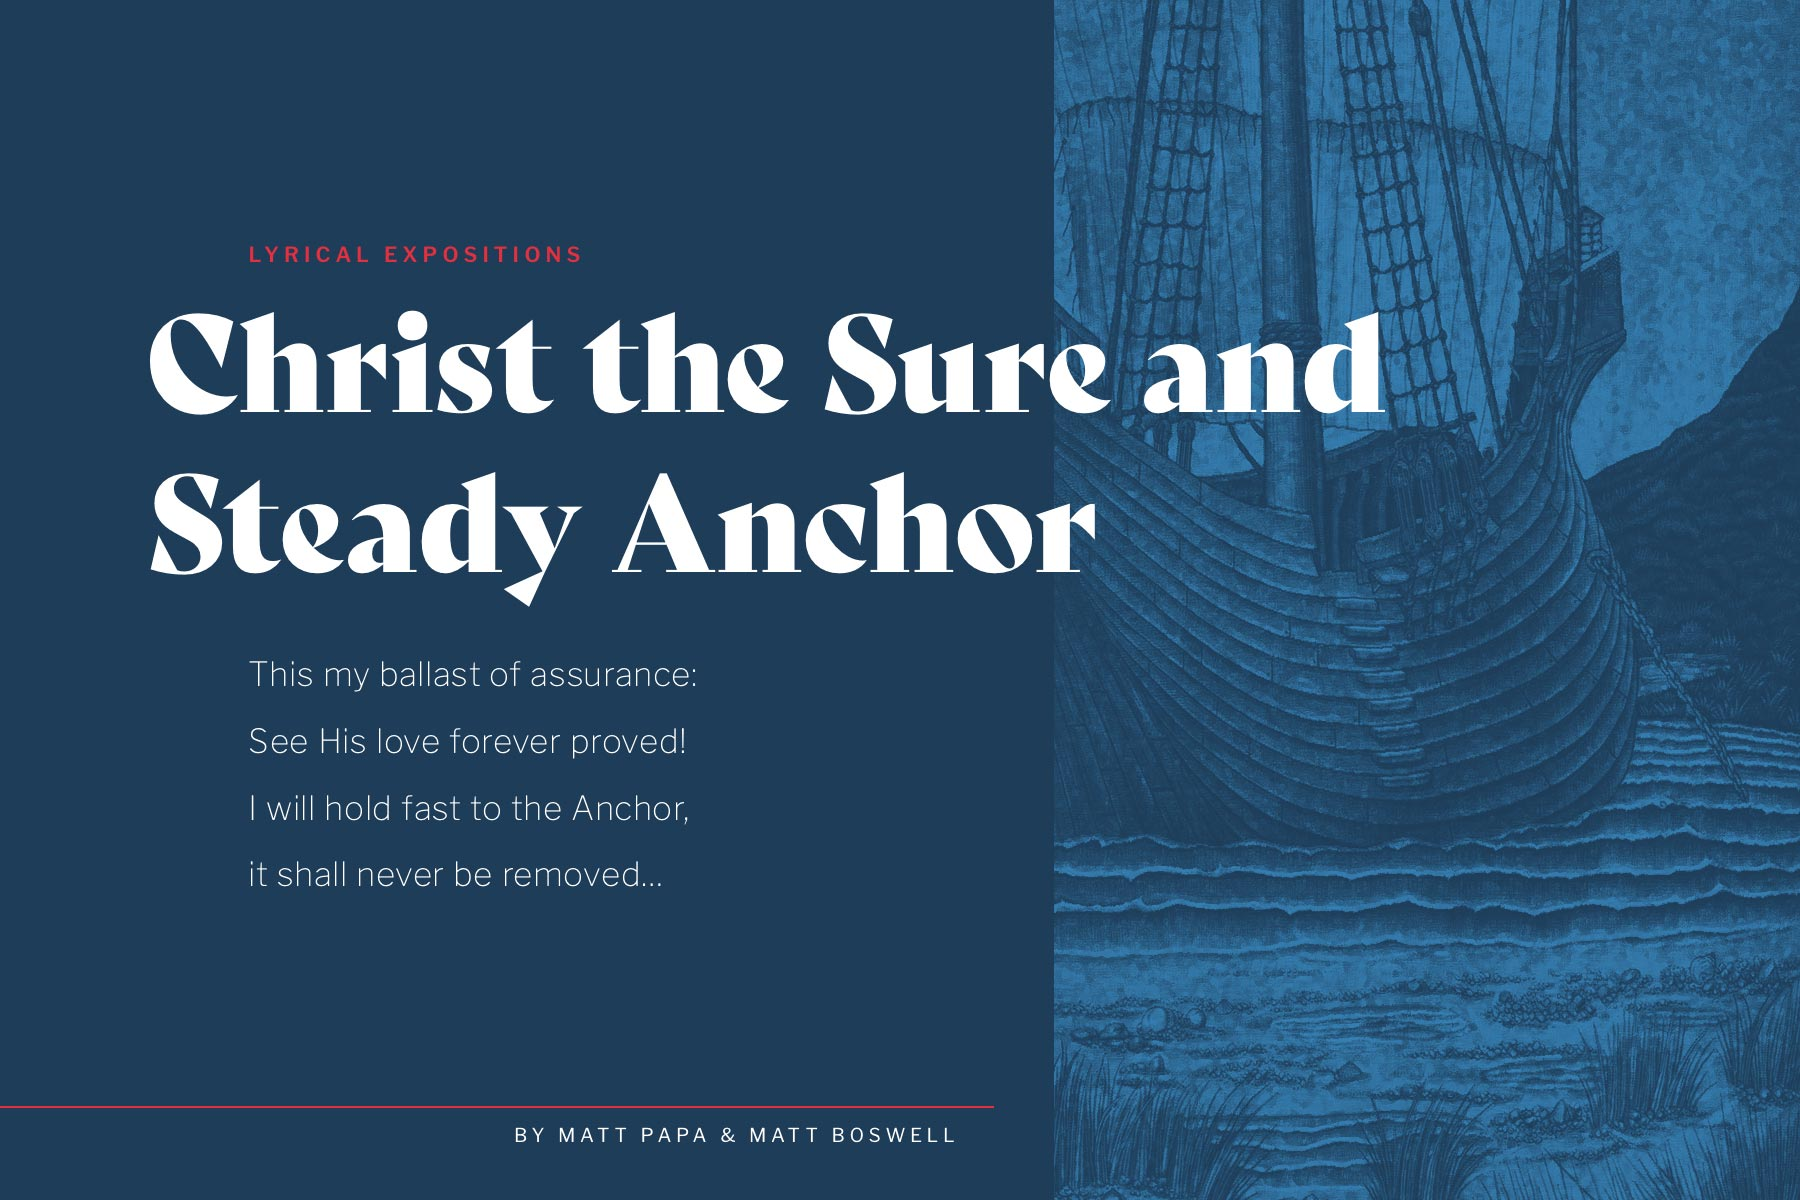 hymn Christian music exposition cover Christ the Sure and Steady Anchor